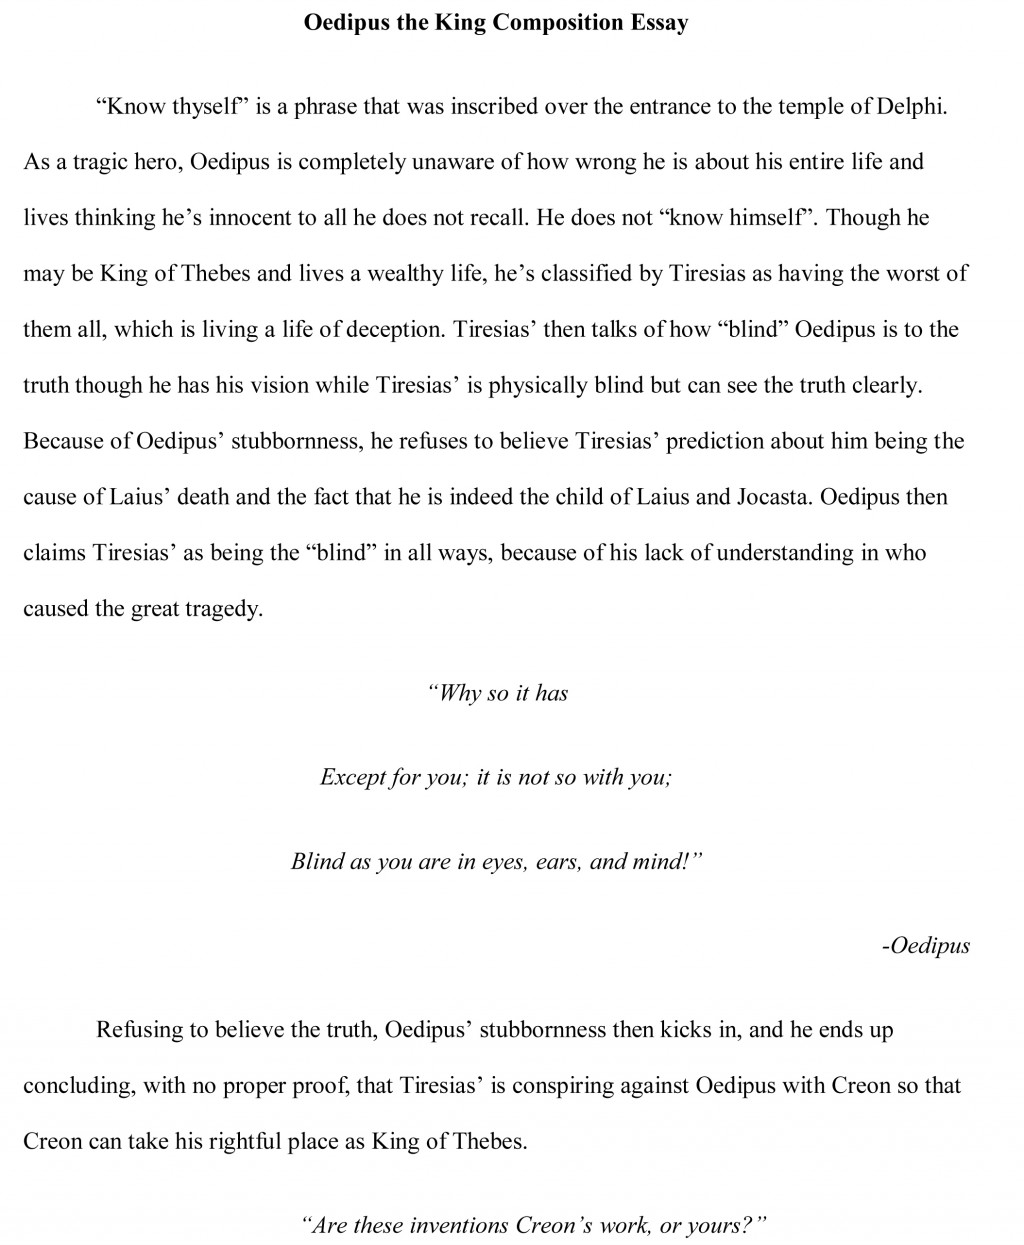 009 An Essay About My Hero Example Oedipus Free Fascinating Heroine Teacher 500 Words A Narrative Large